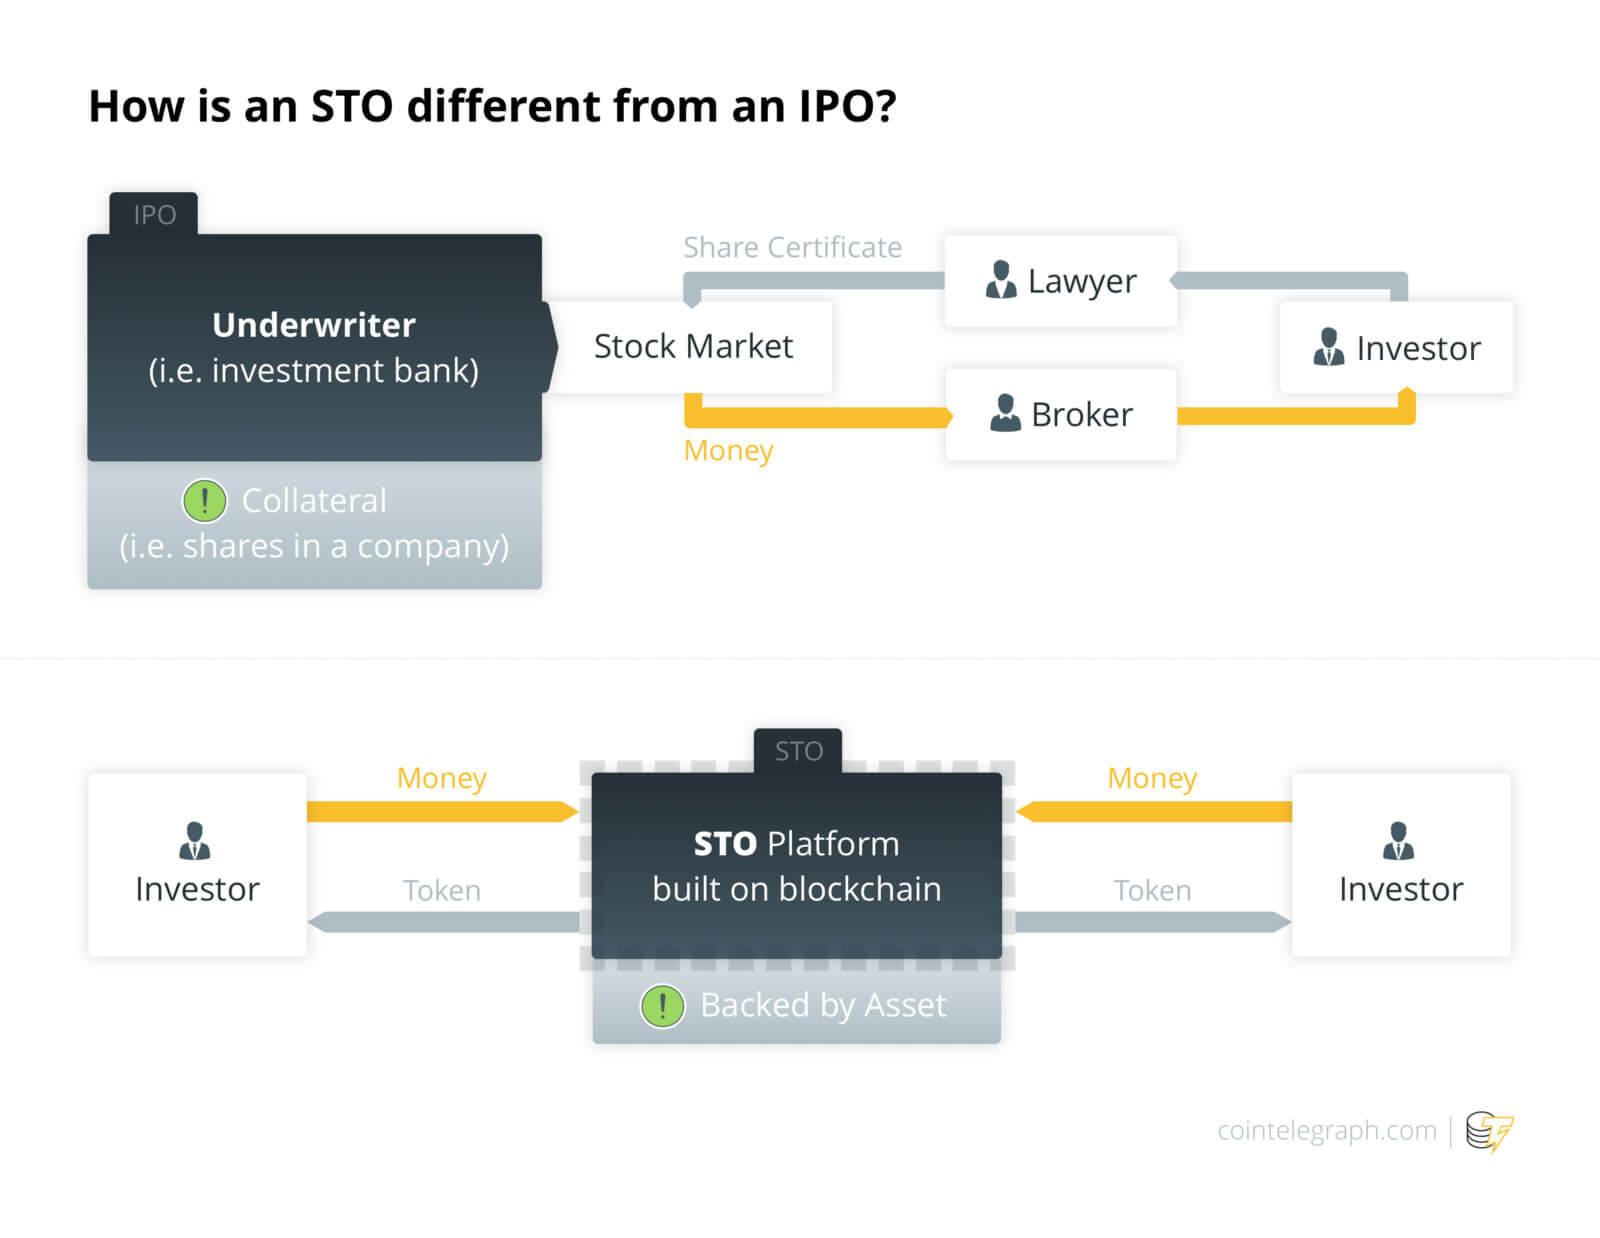 Source—How is an STO different from an IPO?